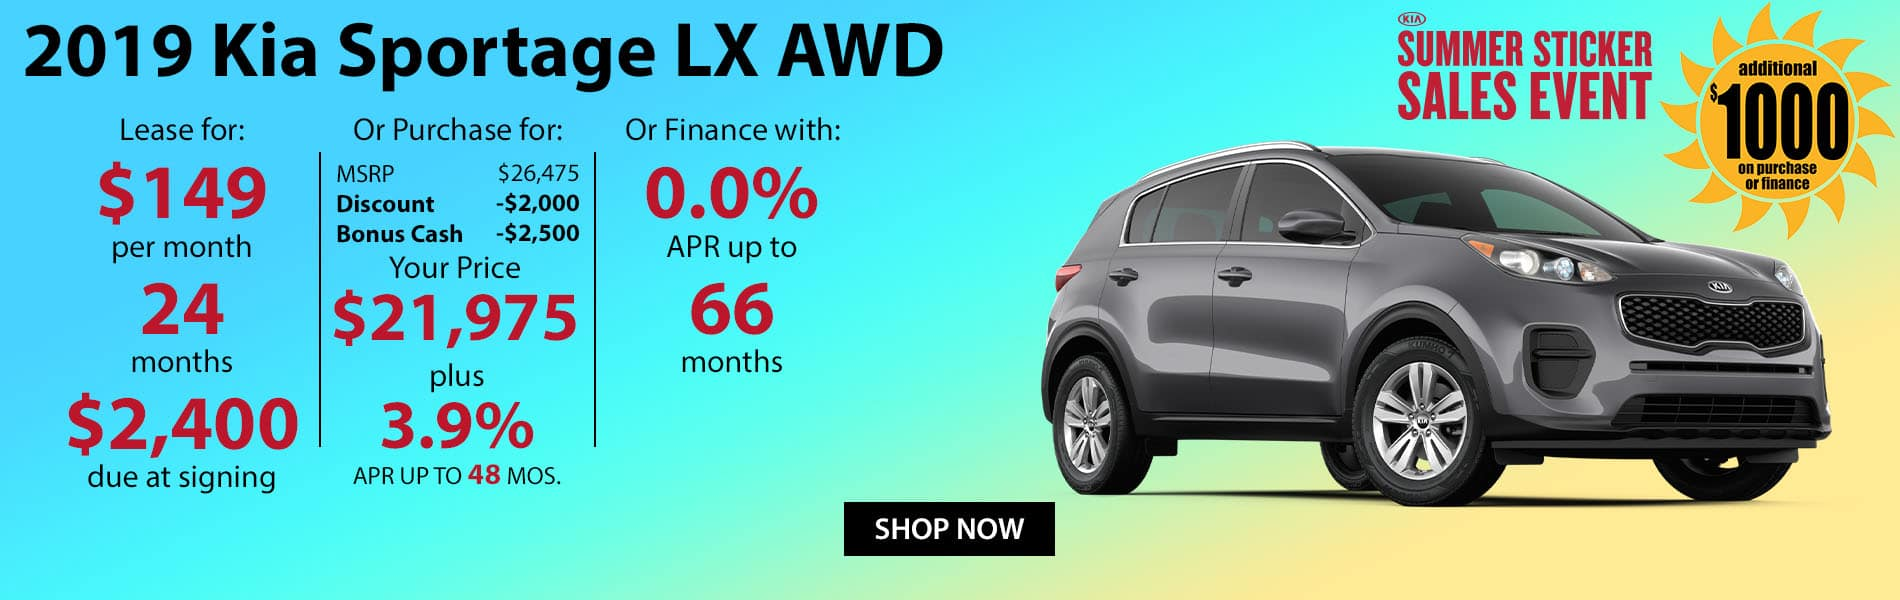 Lease a 2019 Kia Sportage LX for $149 per month or finance with 0% APR up to 66 months